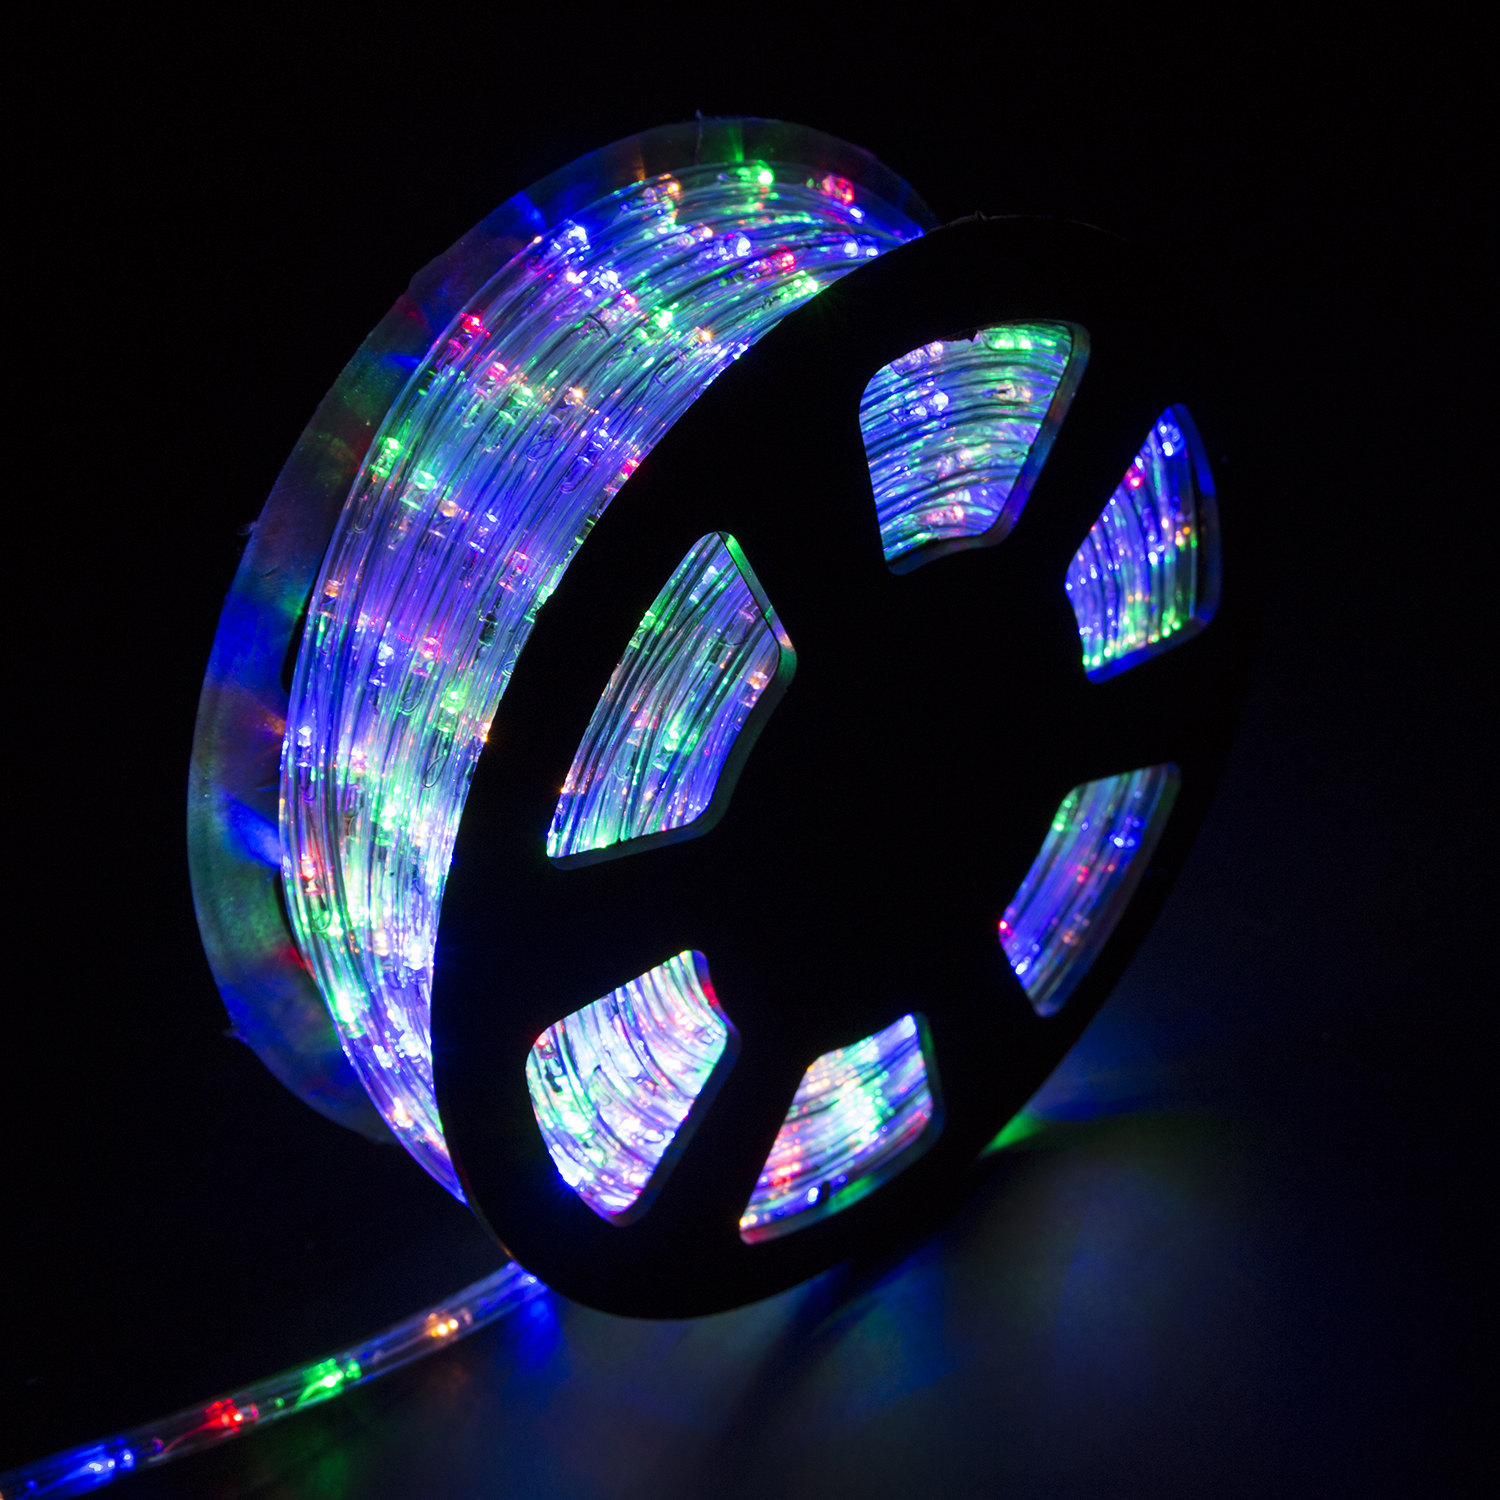 Details About 100ft 110v Led Rope Light Outdoor Yard Home Party Decorative Rgb Color Lighting